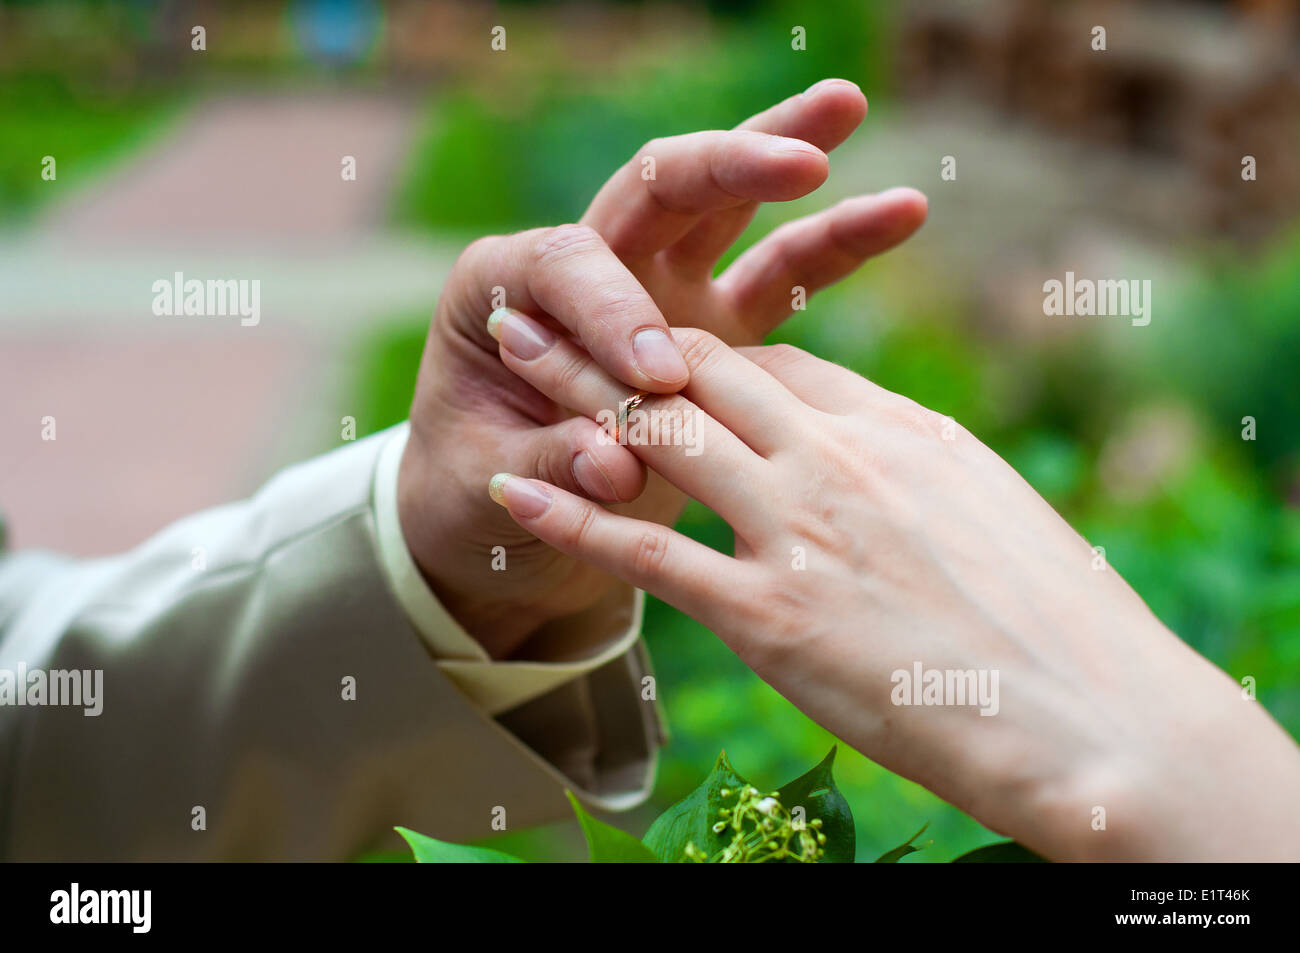 Man's hand putting wedding ring on woman's hand - Stock Image